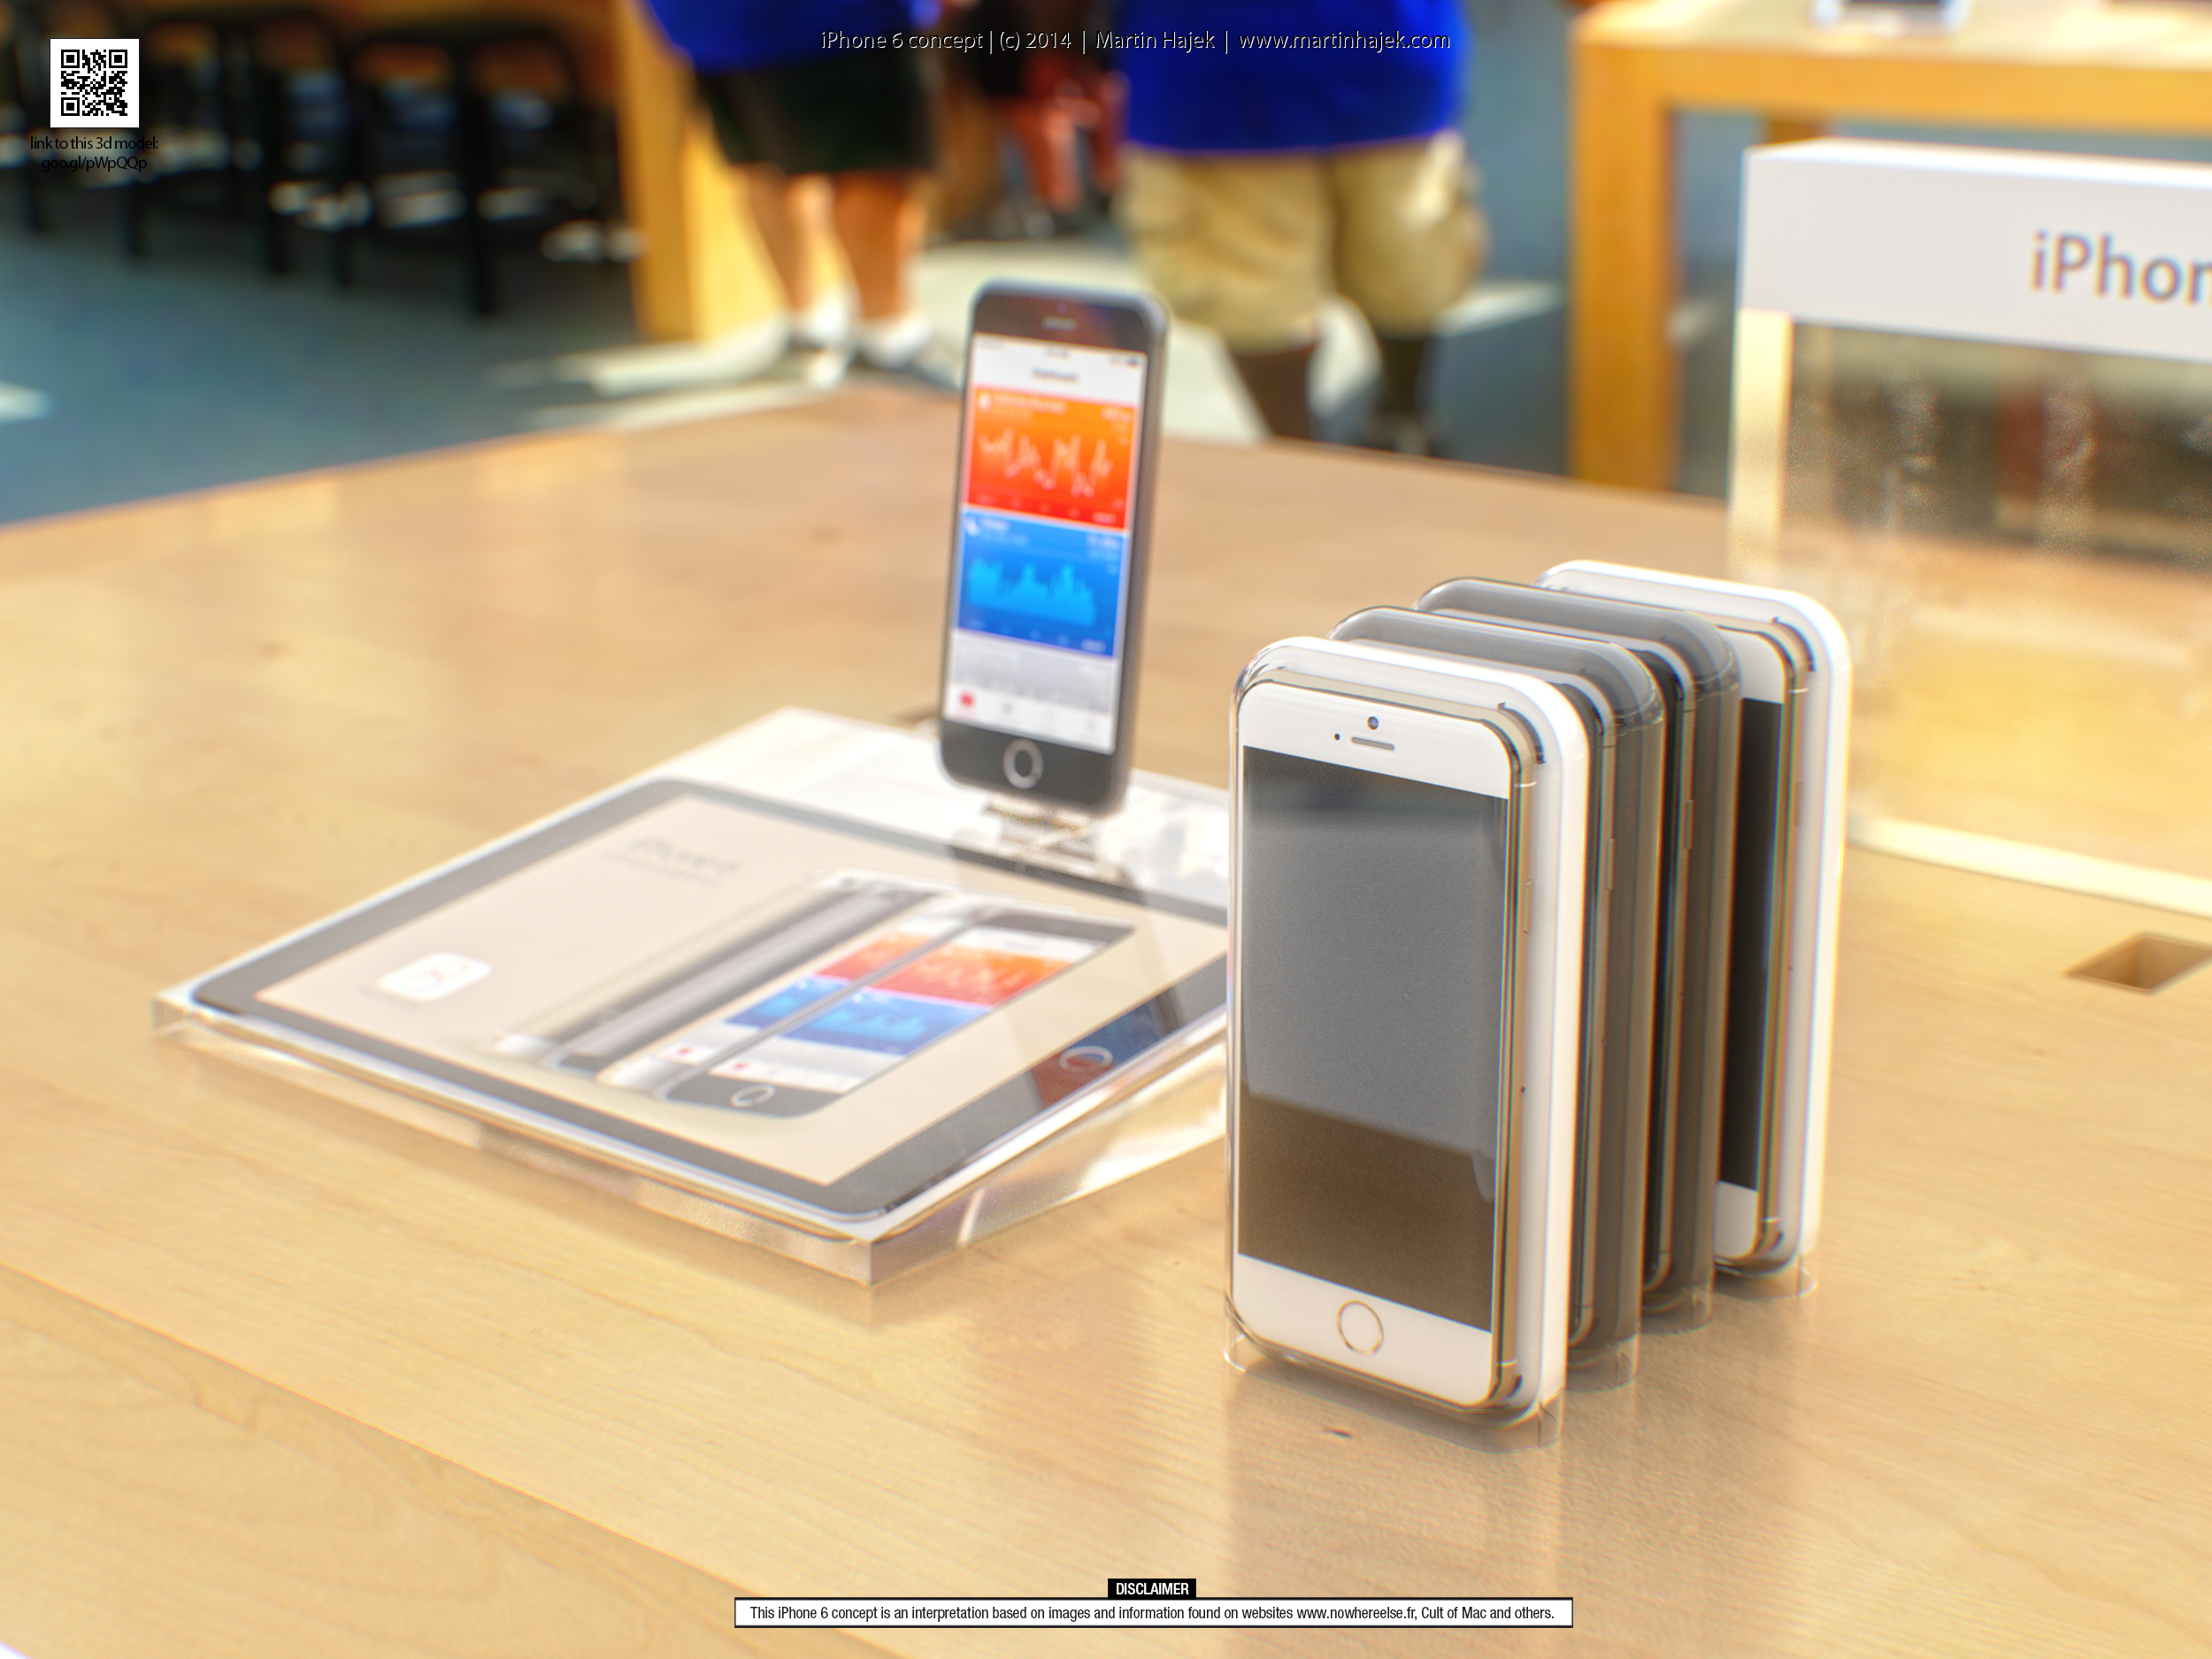 iPhone-6-in-apple-store